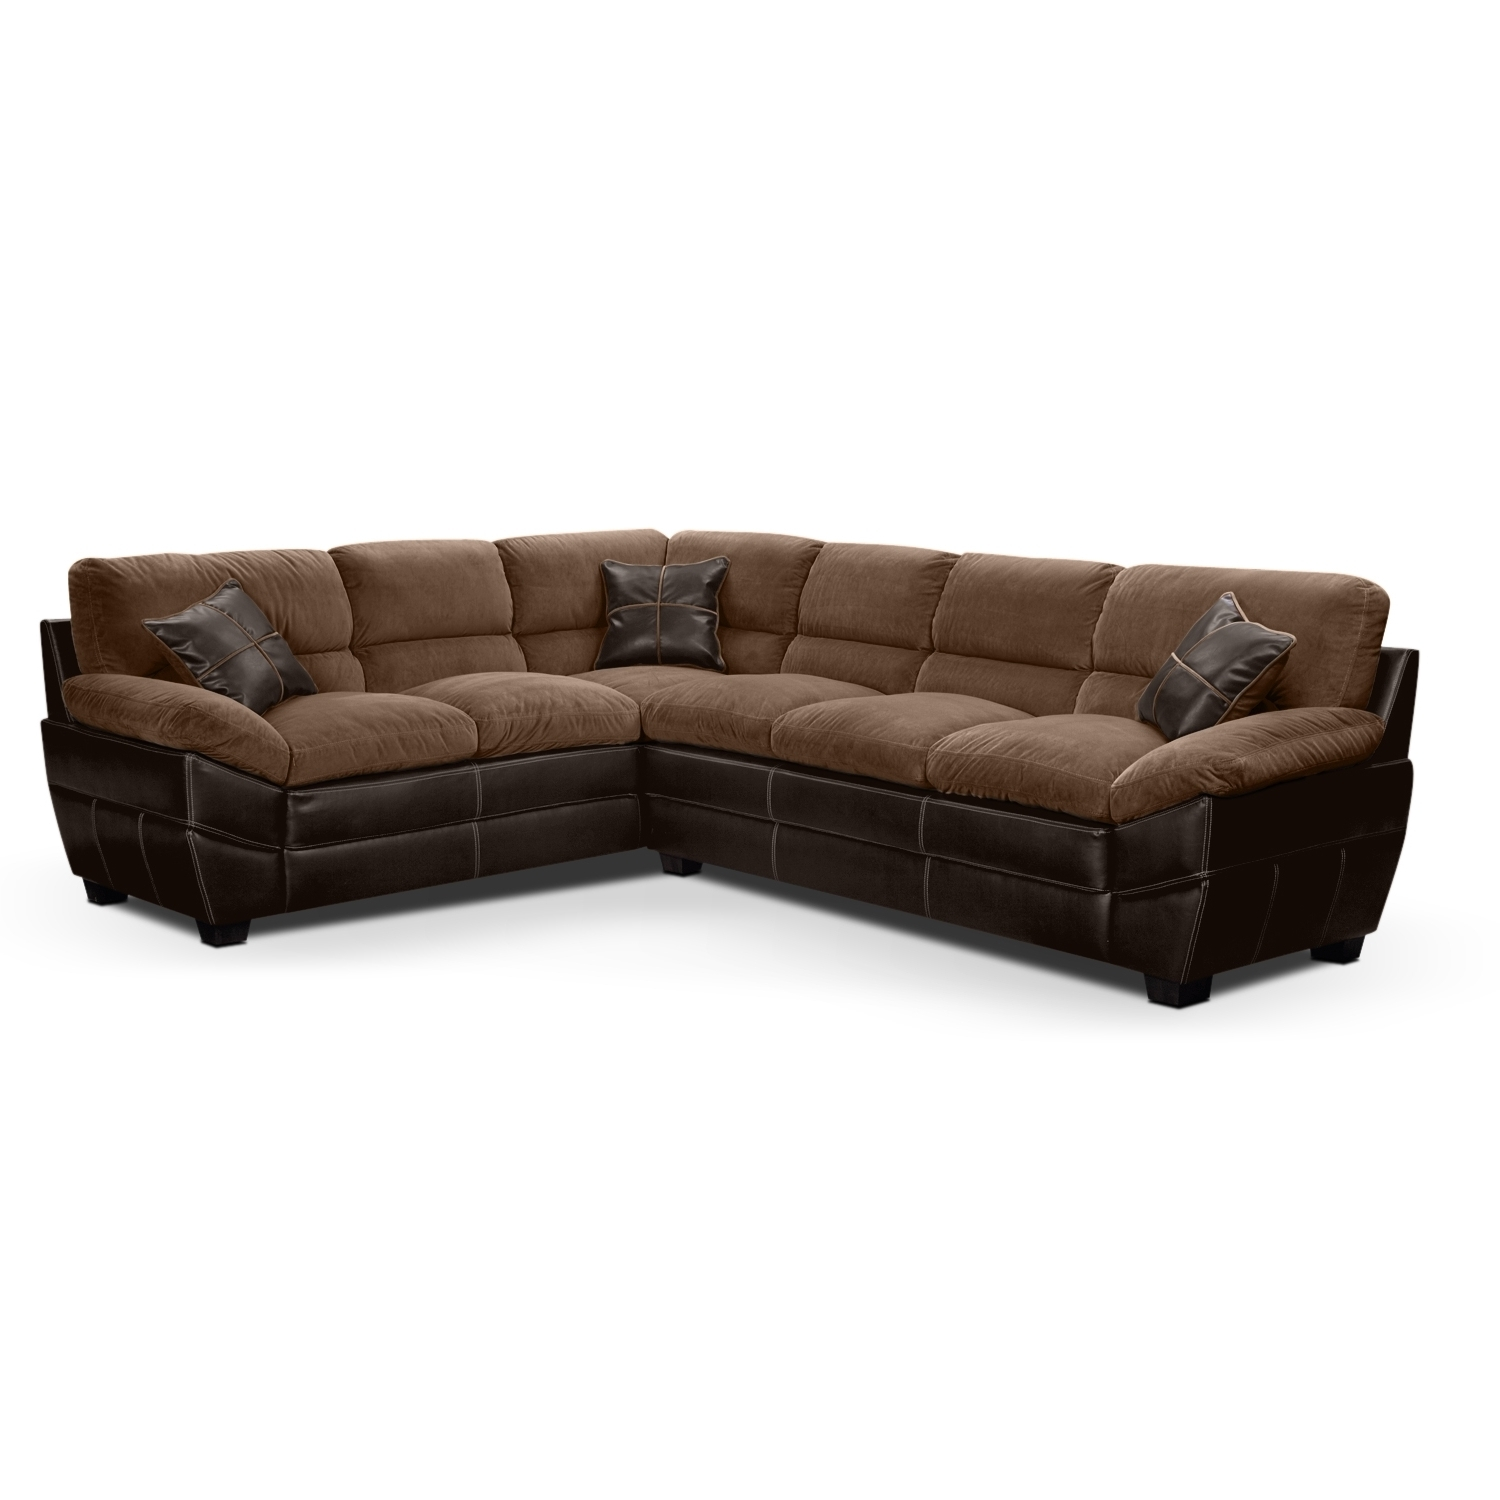 Value City Sectional Sofas With Regard To Widely Used Value City Sectional Sofa With Regard To Best Home Furniture (View 14 of 15)